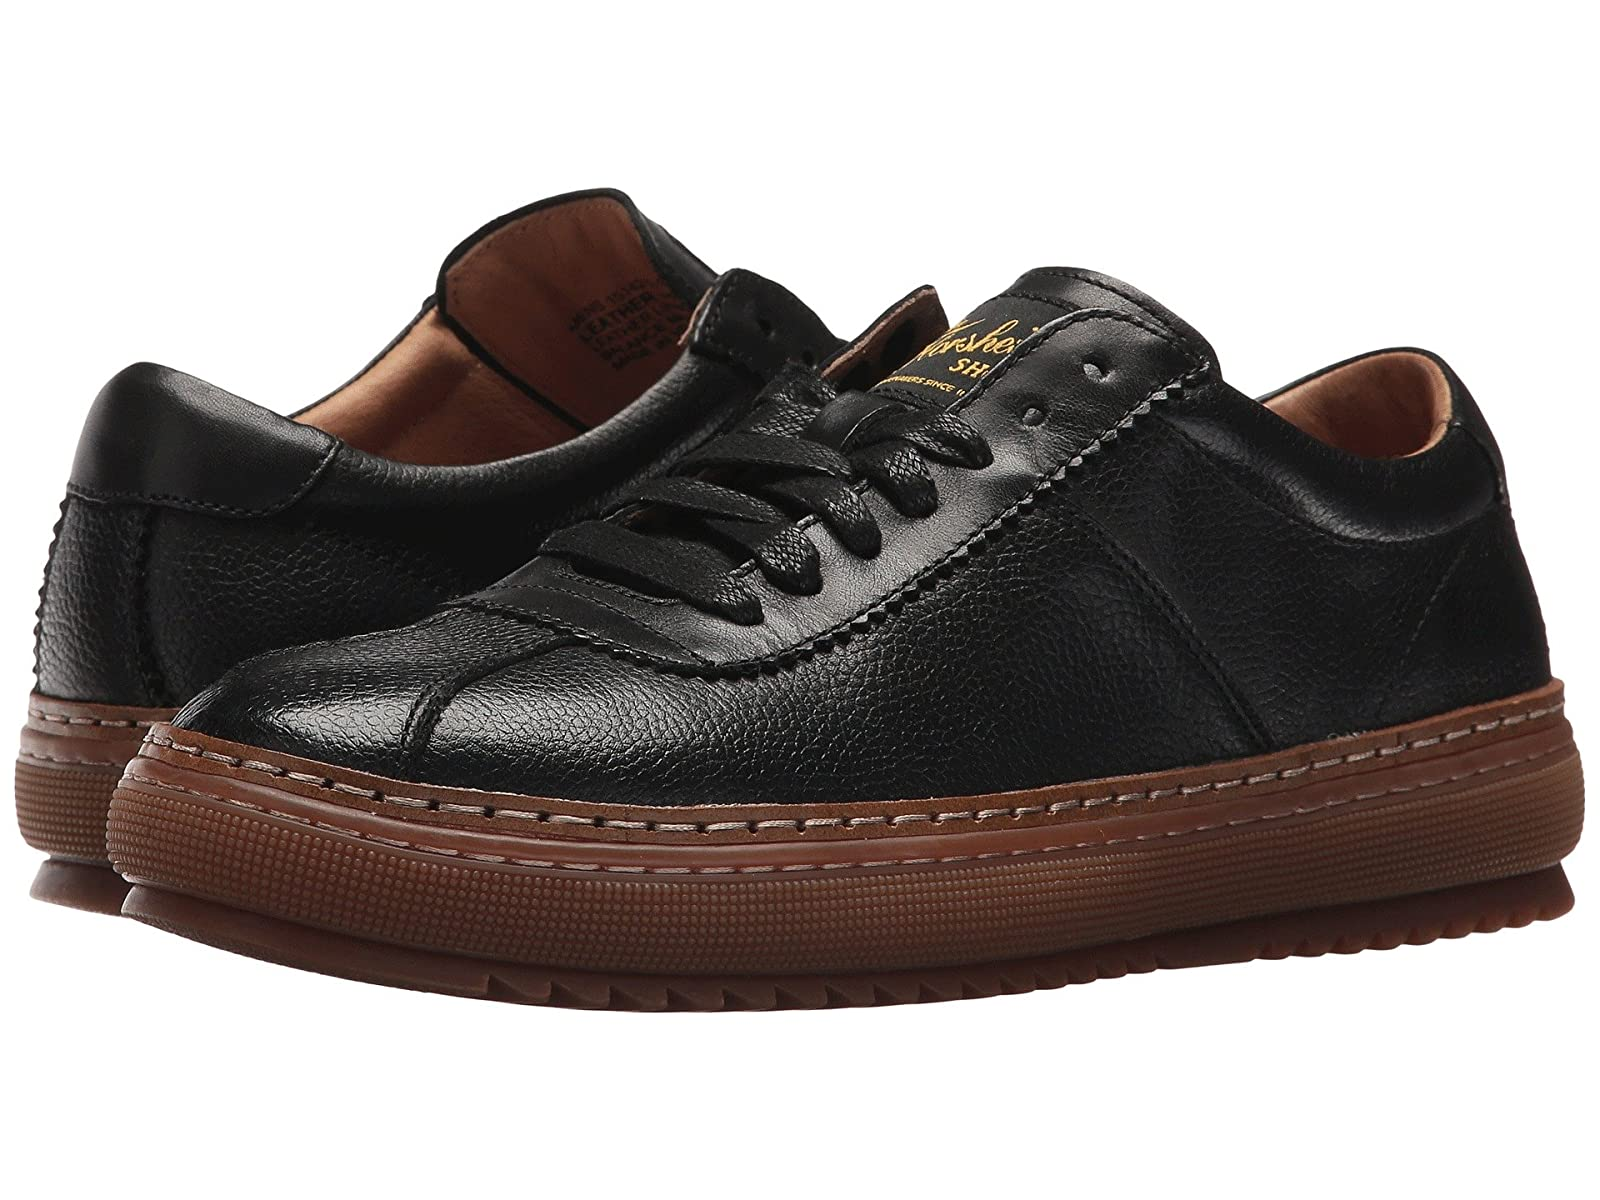 Florsheim Crew Low Lace-UpCheap and distinctive eye-catching shoes